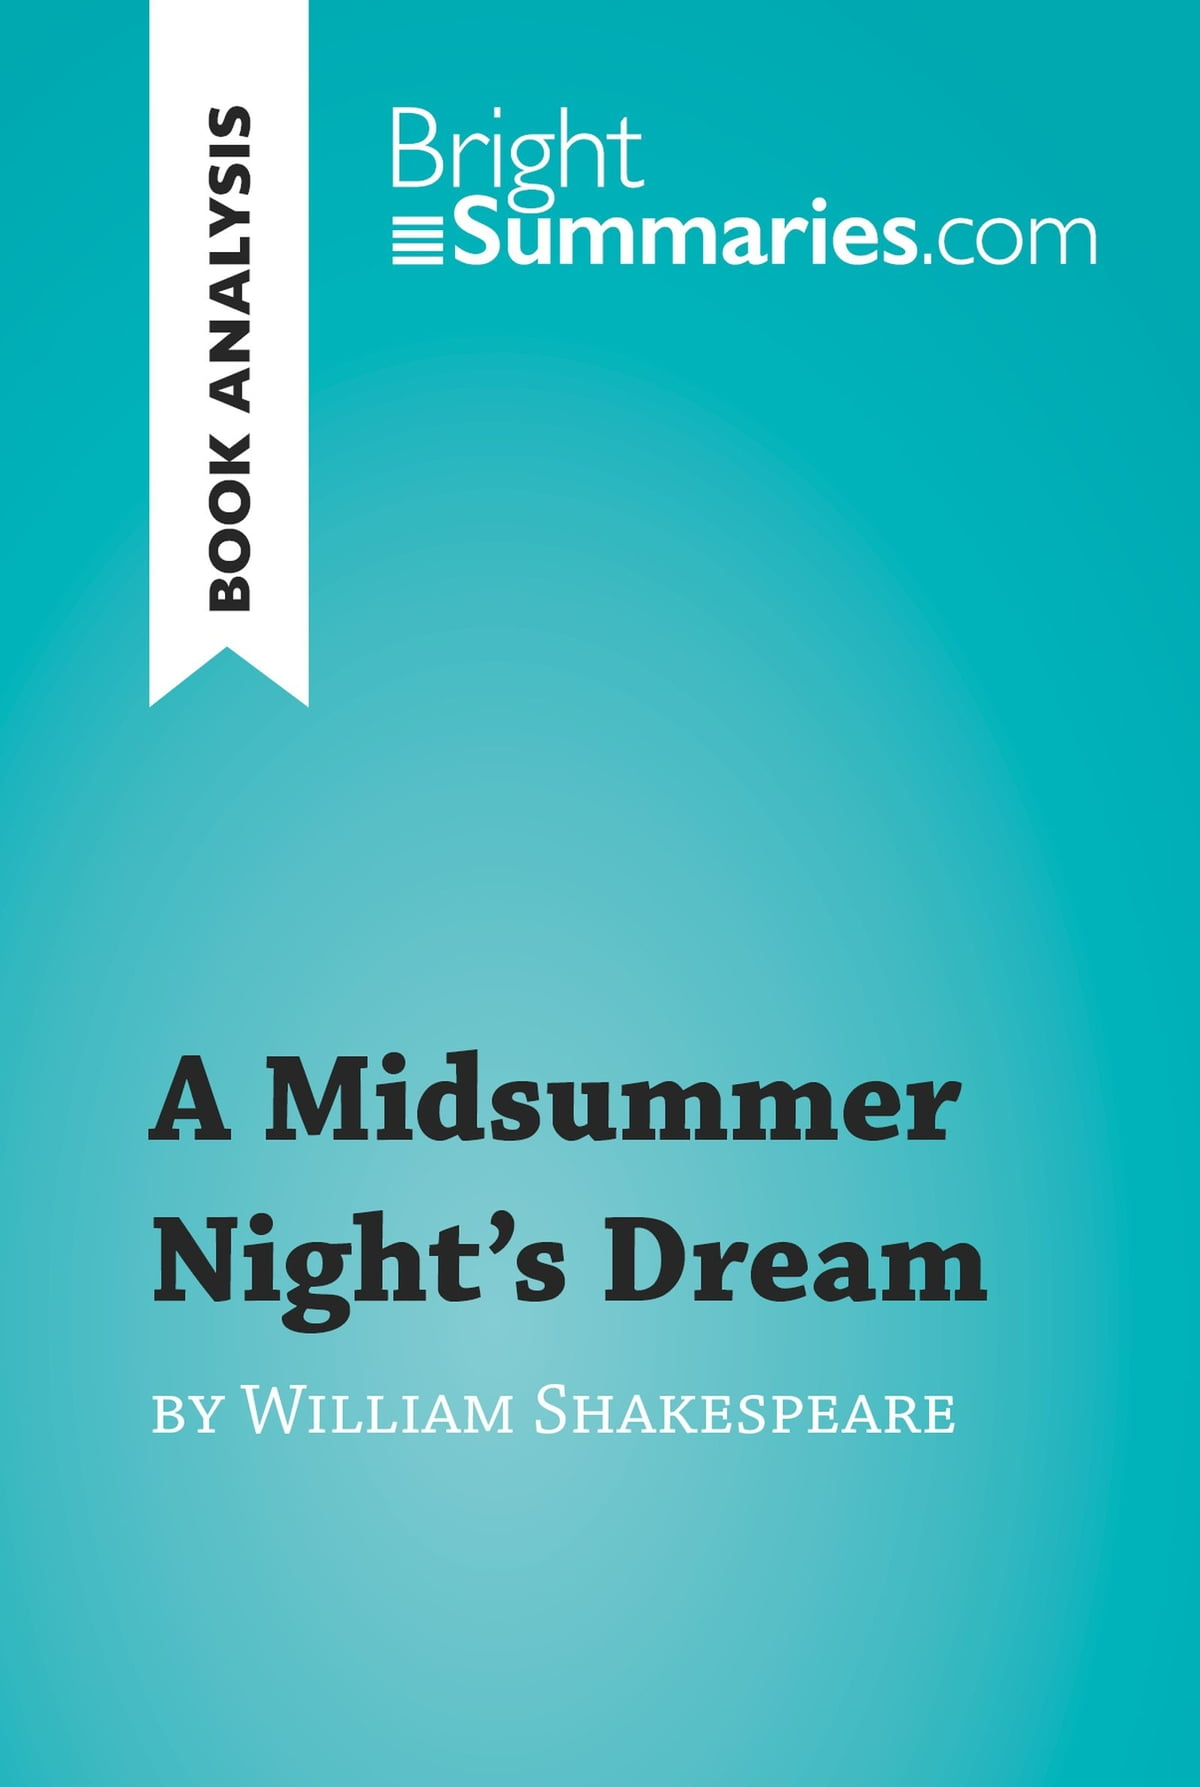 a midsummer night s dream study guide william shakespeare